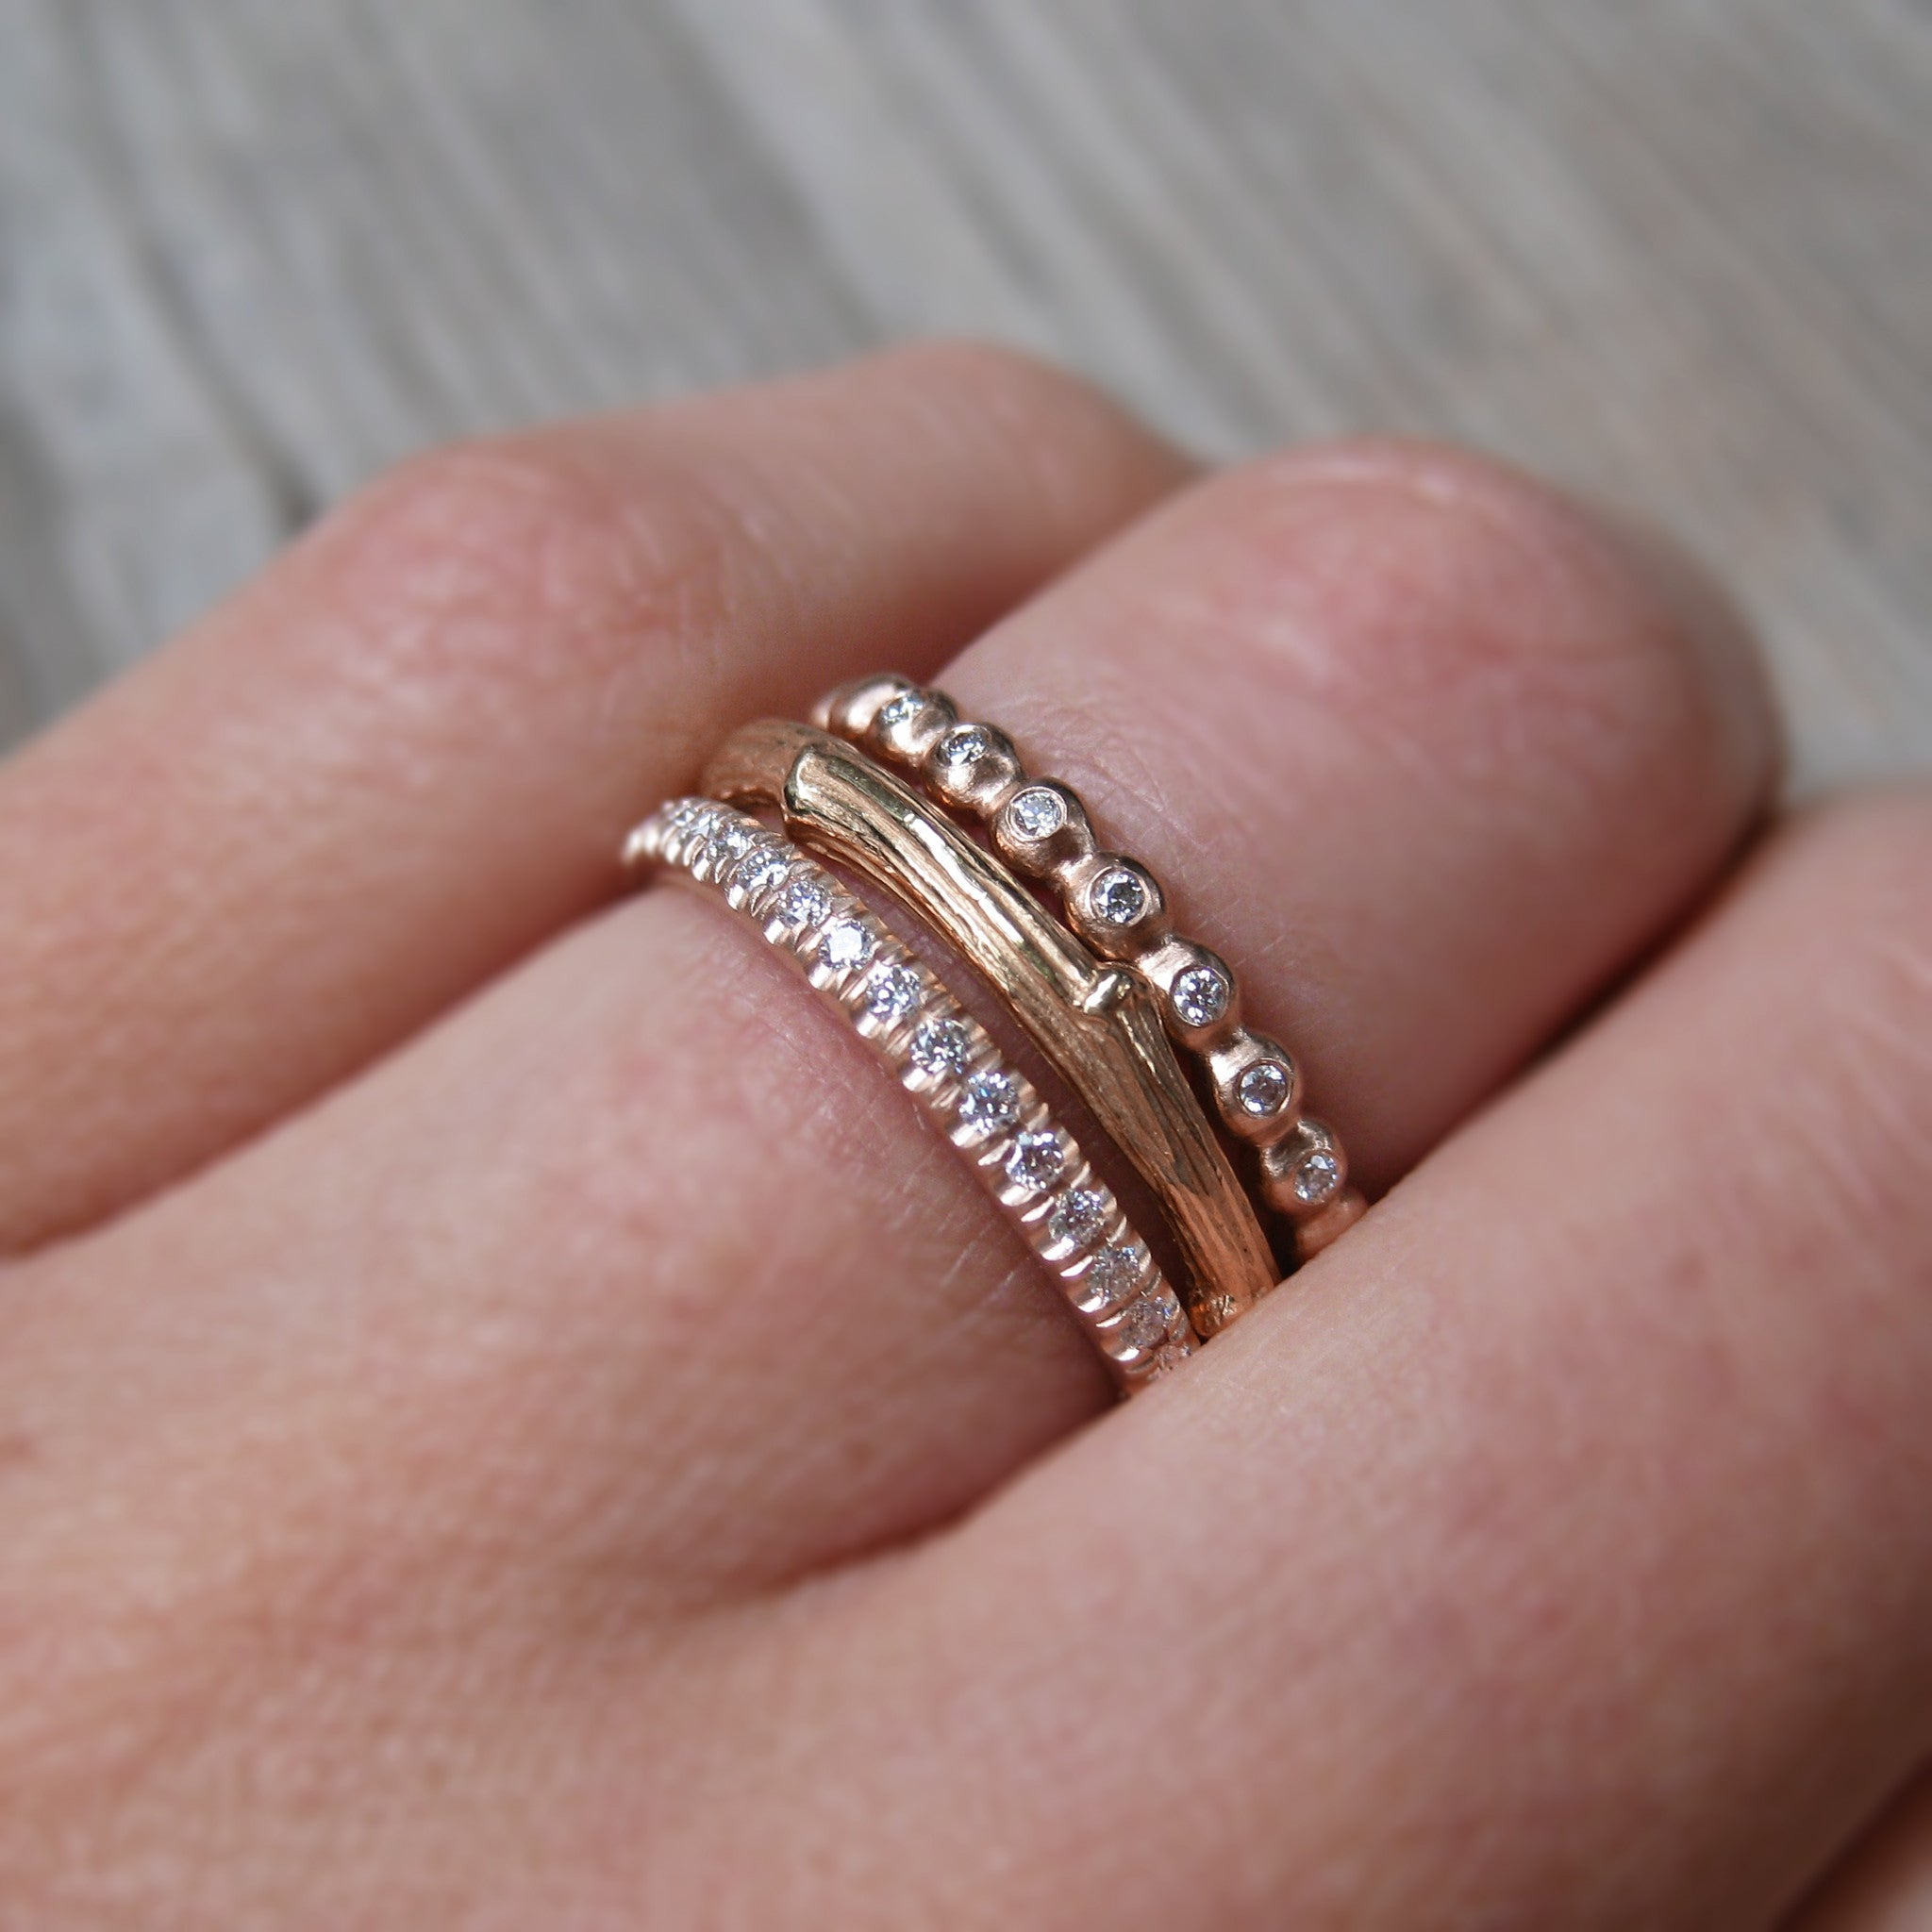 band landaw shop bands eternity nicole diamond jewelry graduated gold ring august rings insp white